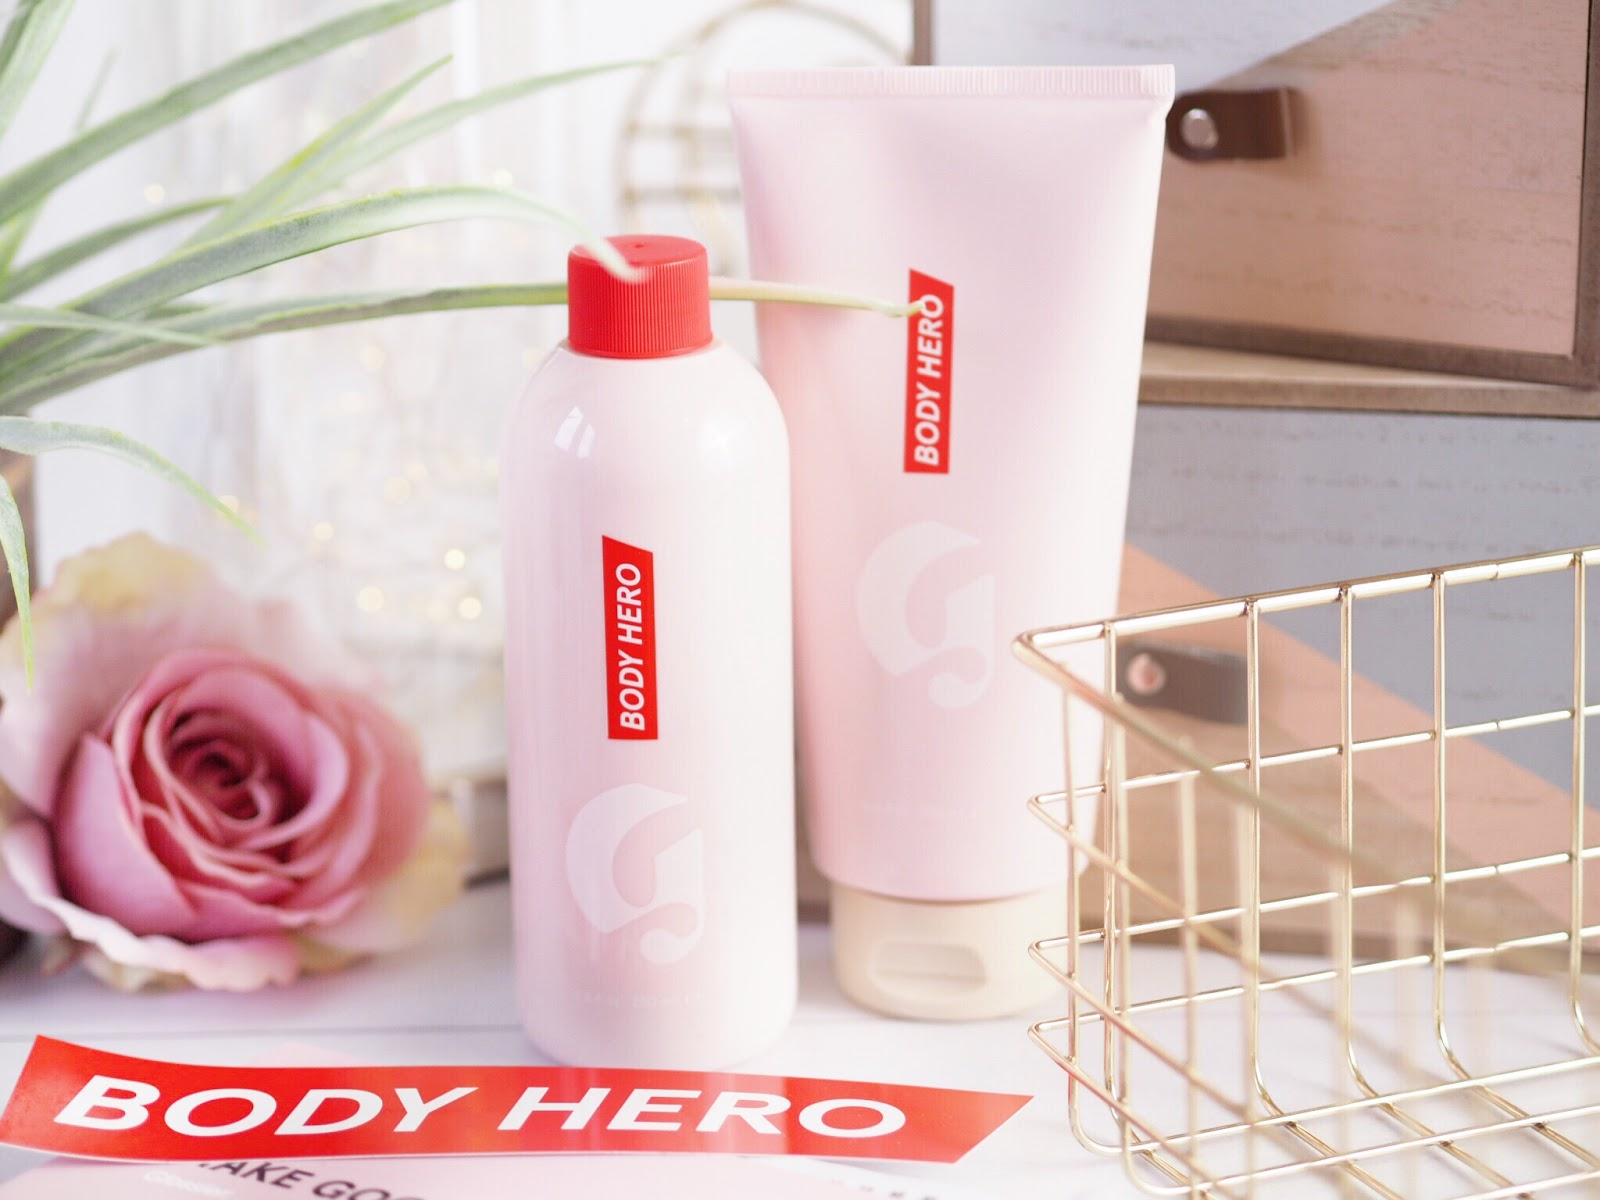 Glossier Body Hero Duo review, body hero, Glossier body lotion, Glossier body cream review